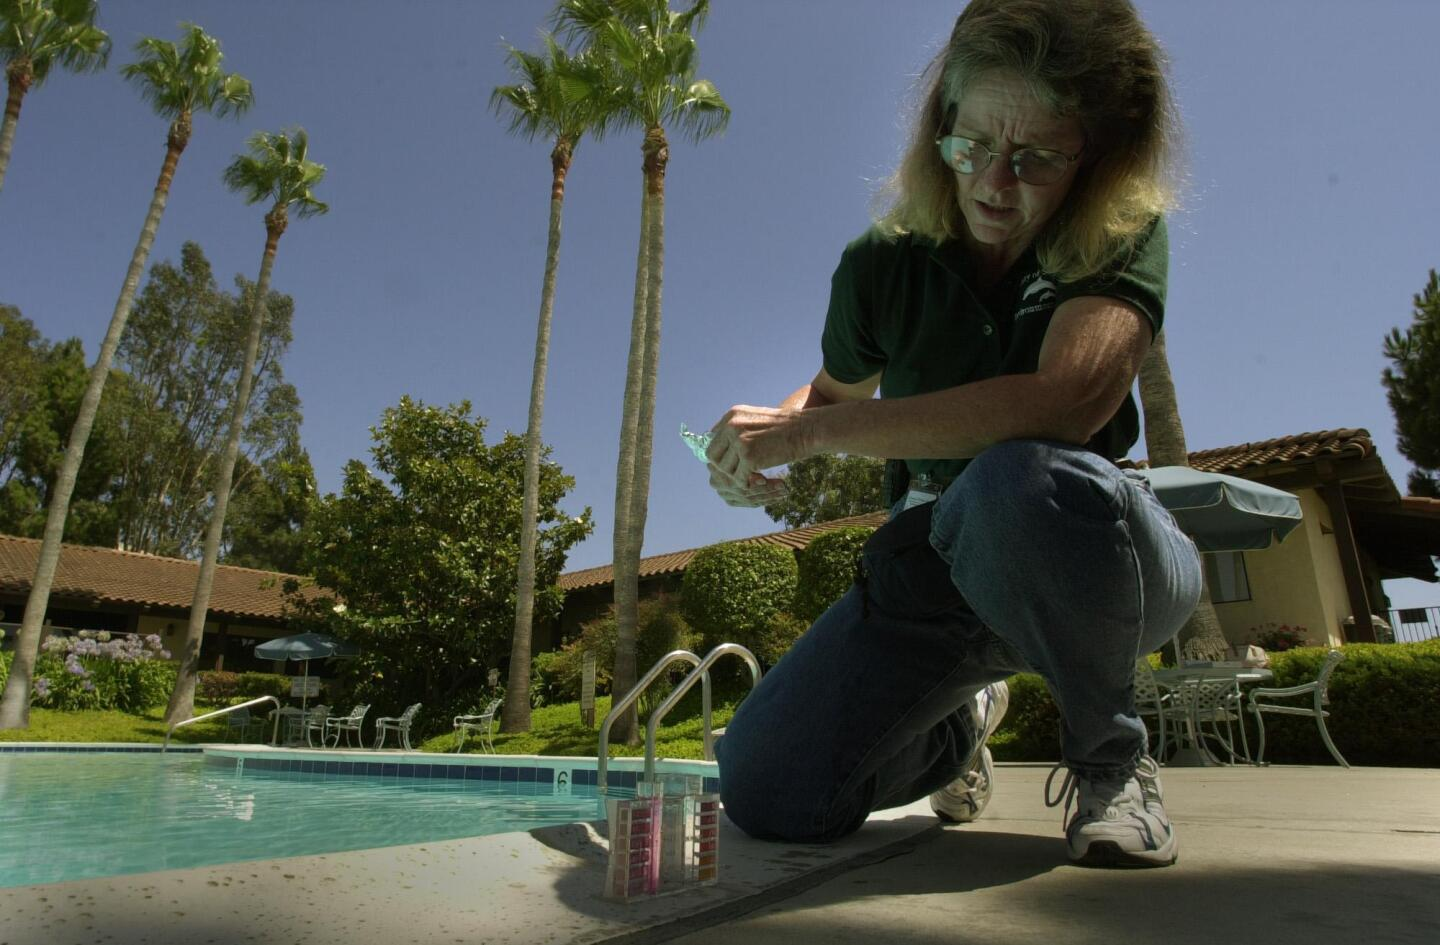 Julayne Gath, SD County Environmental Health Specialist looks at a chlorine and ph tester after dipping it into a pool at the Palomar Estates West mobile home park in San Marcos. UT/John Gastaldo